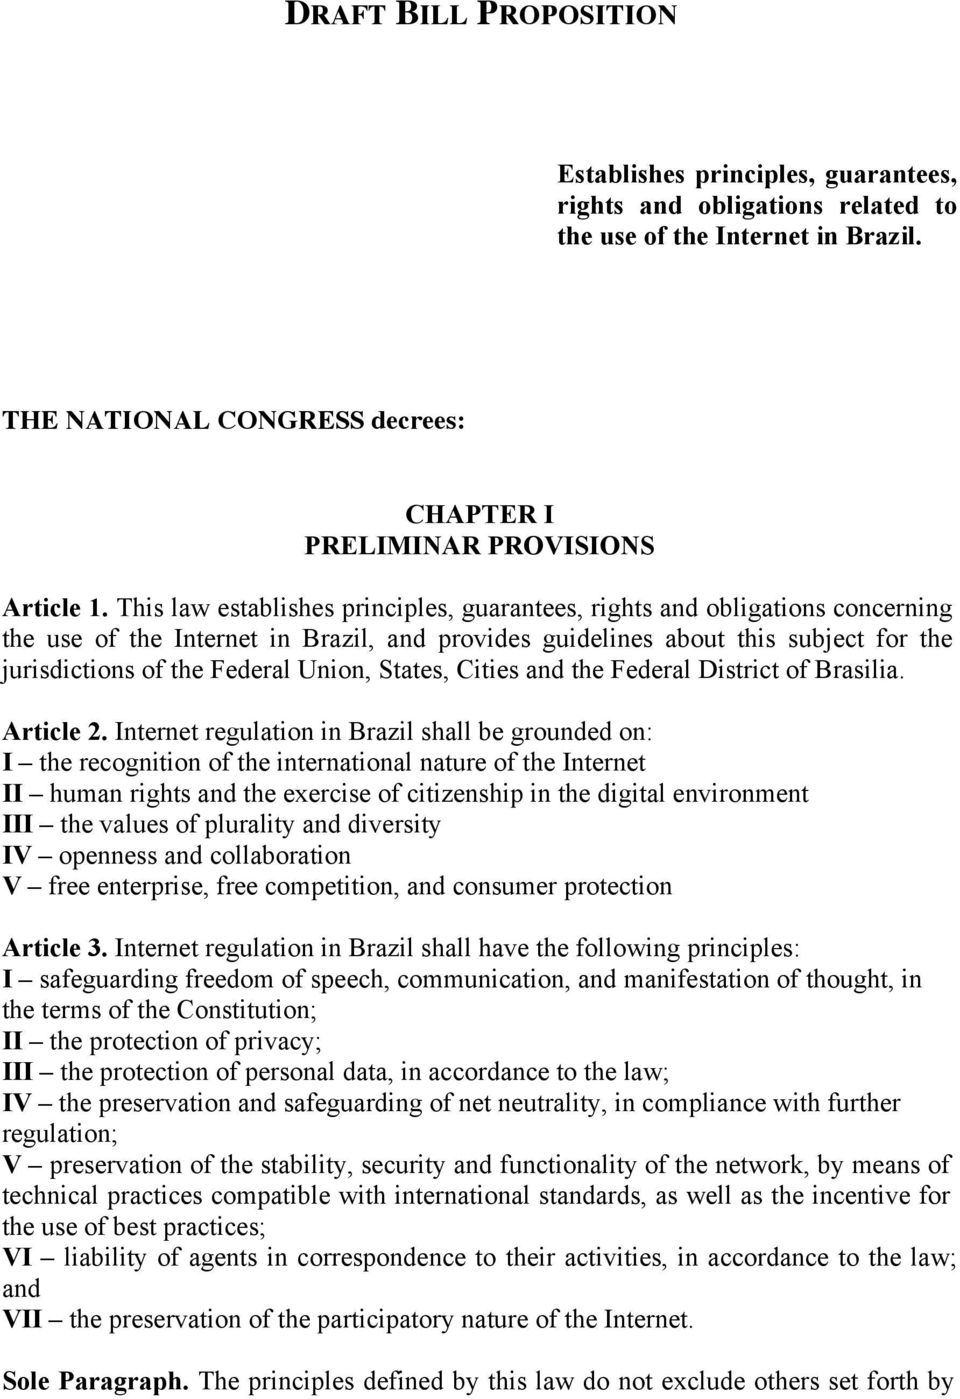 This law establishes principles, guarantees, rights and obligations concerning the use of the Internet in Brazil, and provides guidelines about this subject for the jurisdictions of the Federal